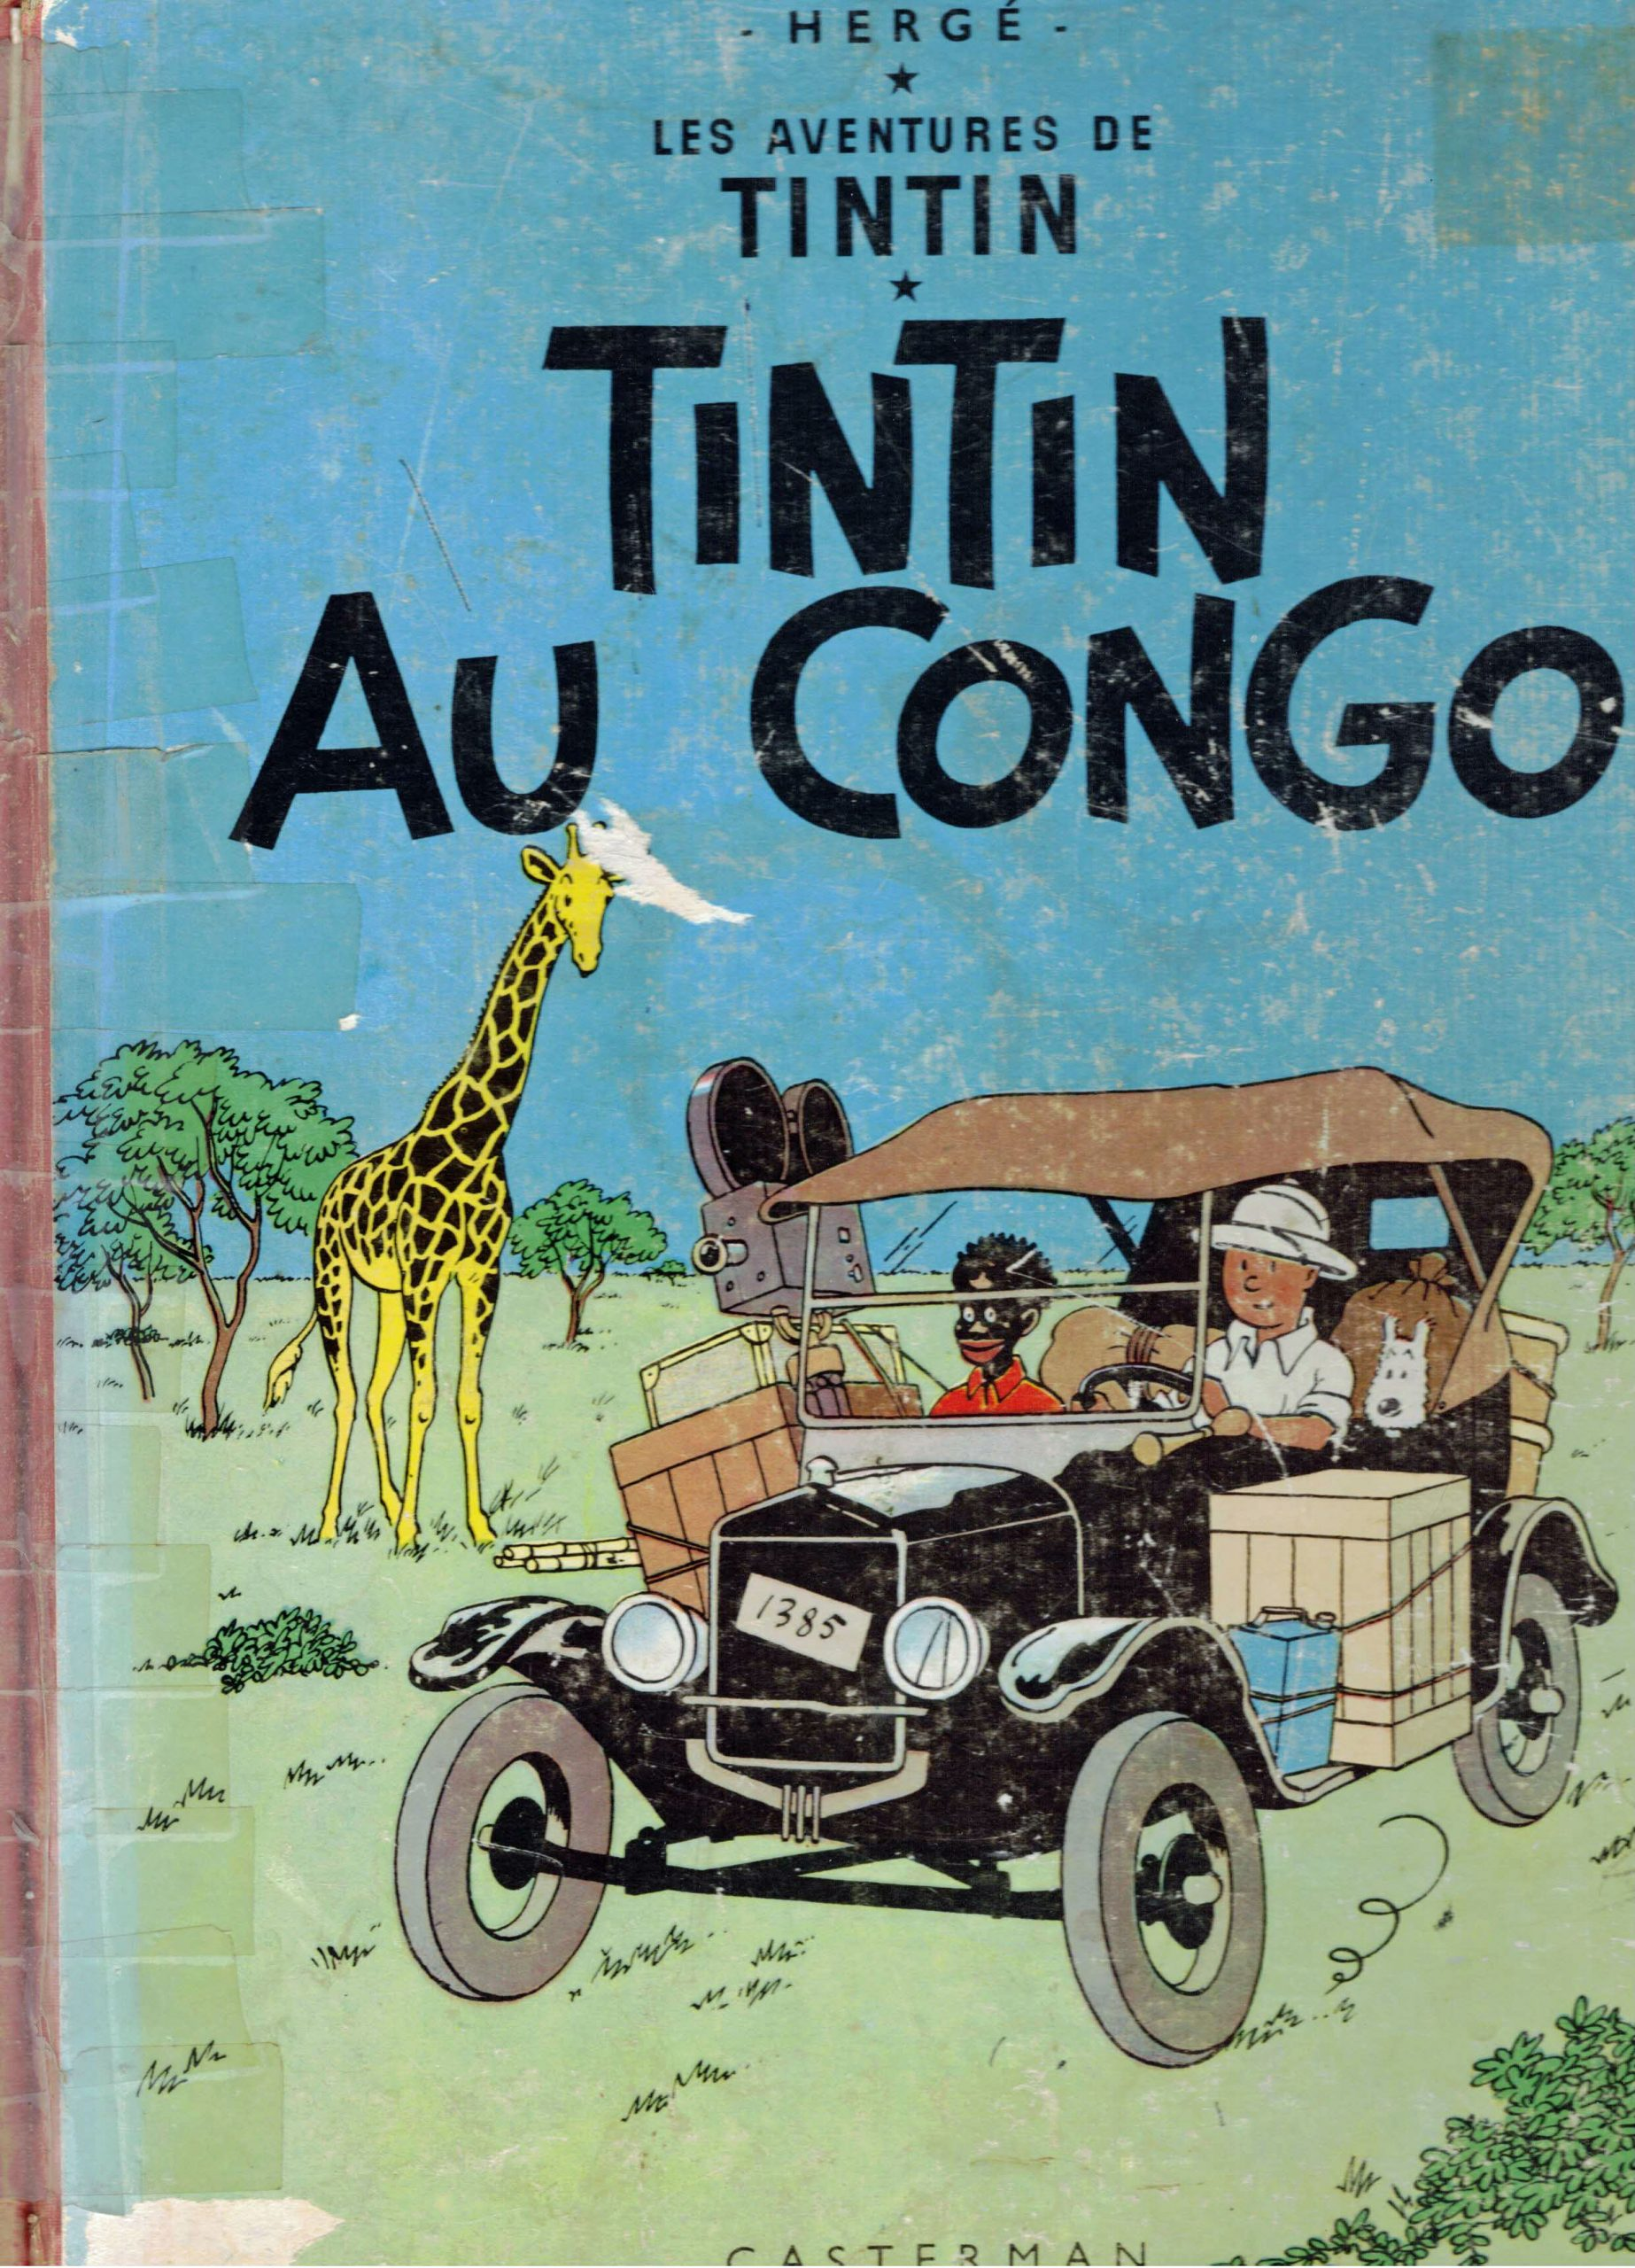 """""""Tintin in the Congo"""" was Hergé's second published book in the Tintin series, serialized first in 1930 and 1931 in a reactionary Catholic Belgian newspaper as a means of propagandizing Belgian colonization of the Congo to young children. The book is a series of stereotyped and often offensive portrayals of Black Africans."""